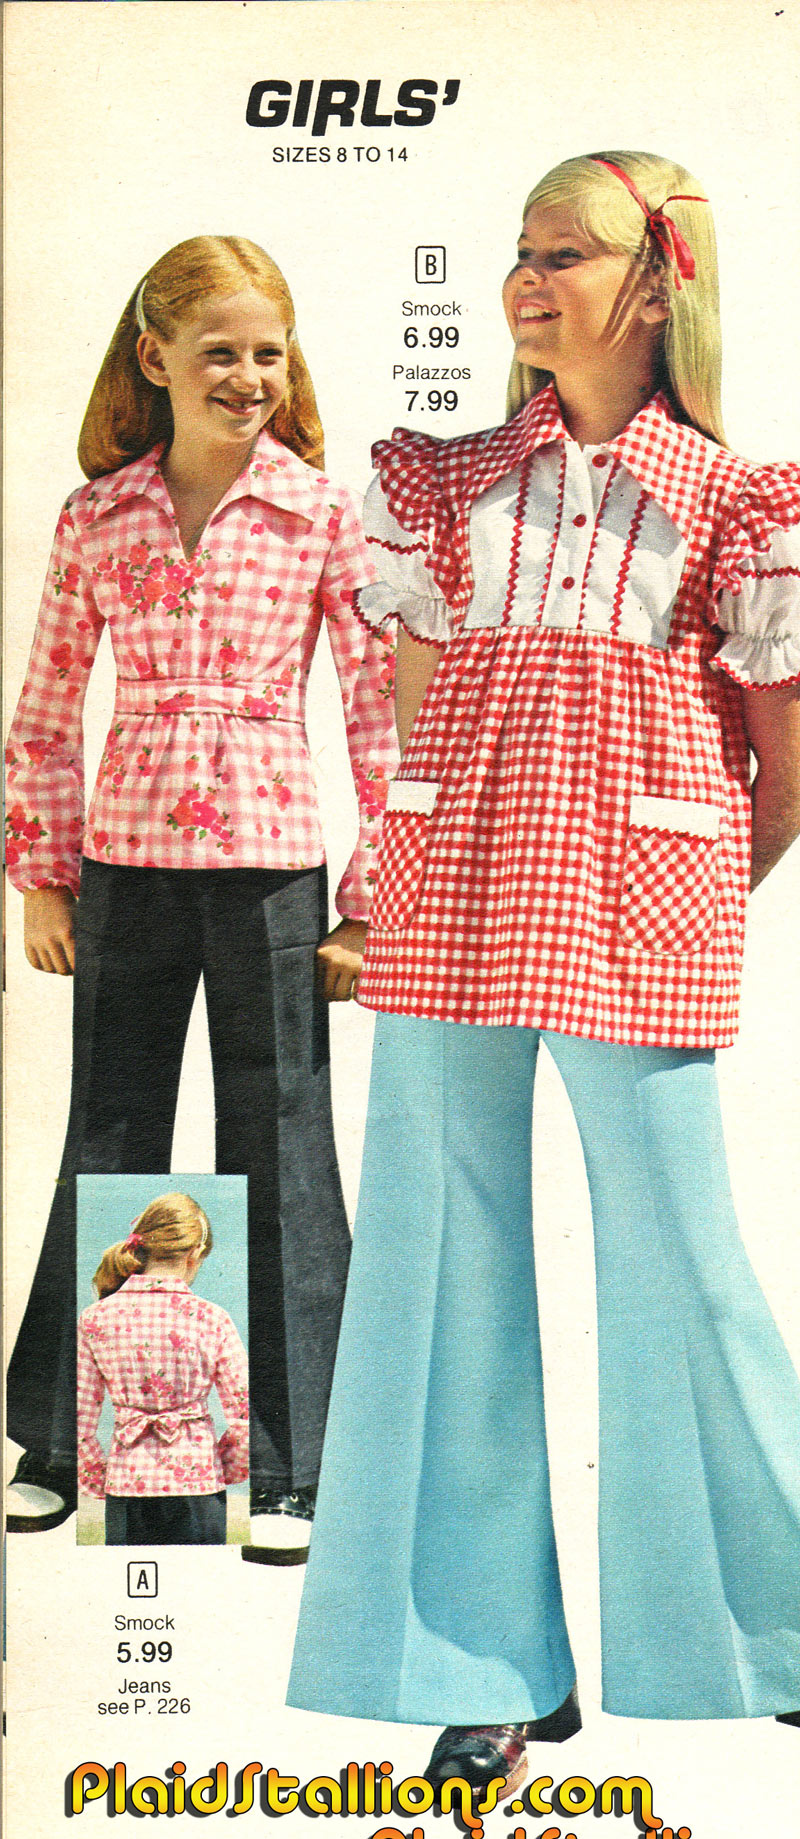 Back TO School fashions 1970s